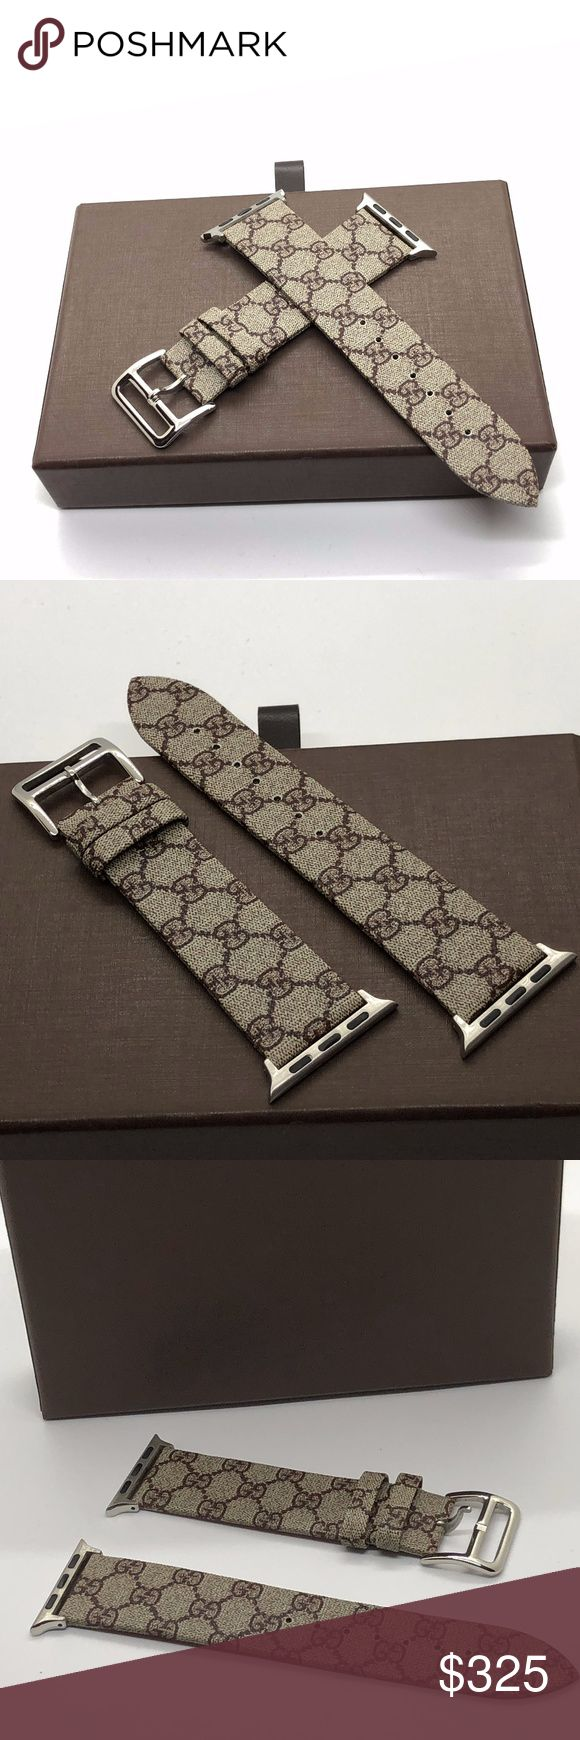 Vintage Gucci Apple Watch Replacement Band This luxury designer band is handmade with luxury fabric from authentic Gucci Handbag. The bands are designed for both men and women of all ages. The installation is very simple and can be done in seconds. You have the option to change the connector to other colors that may closely match the color of your watch. These bands are sure to be a discussion piece when worn around friends. Gucci Accessories Watches